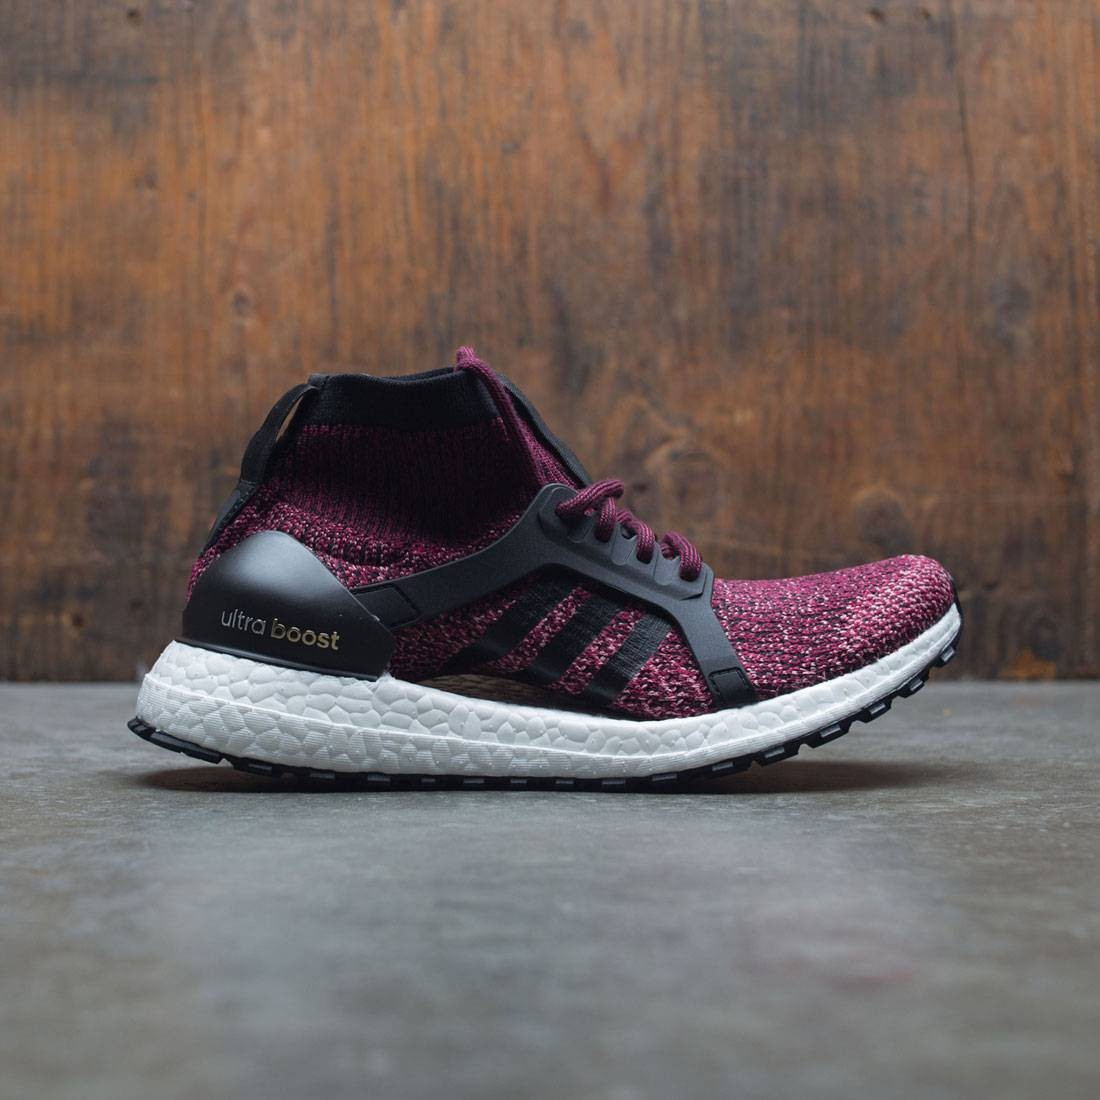 954328a482d9d Adidas Women UltraBOOST X All Terrain burgundy mystery ruby core black  trace pink